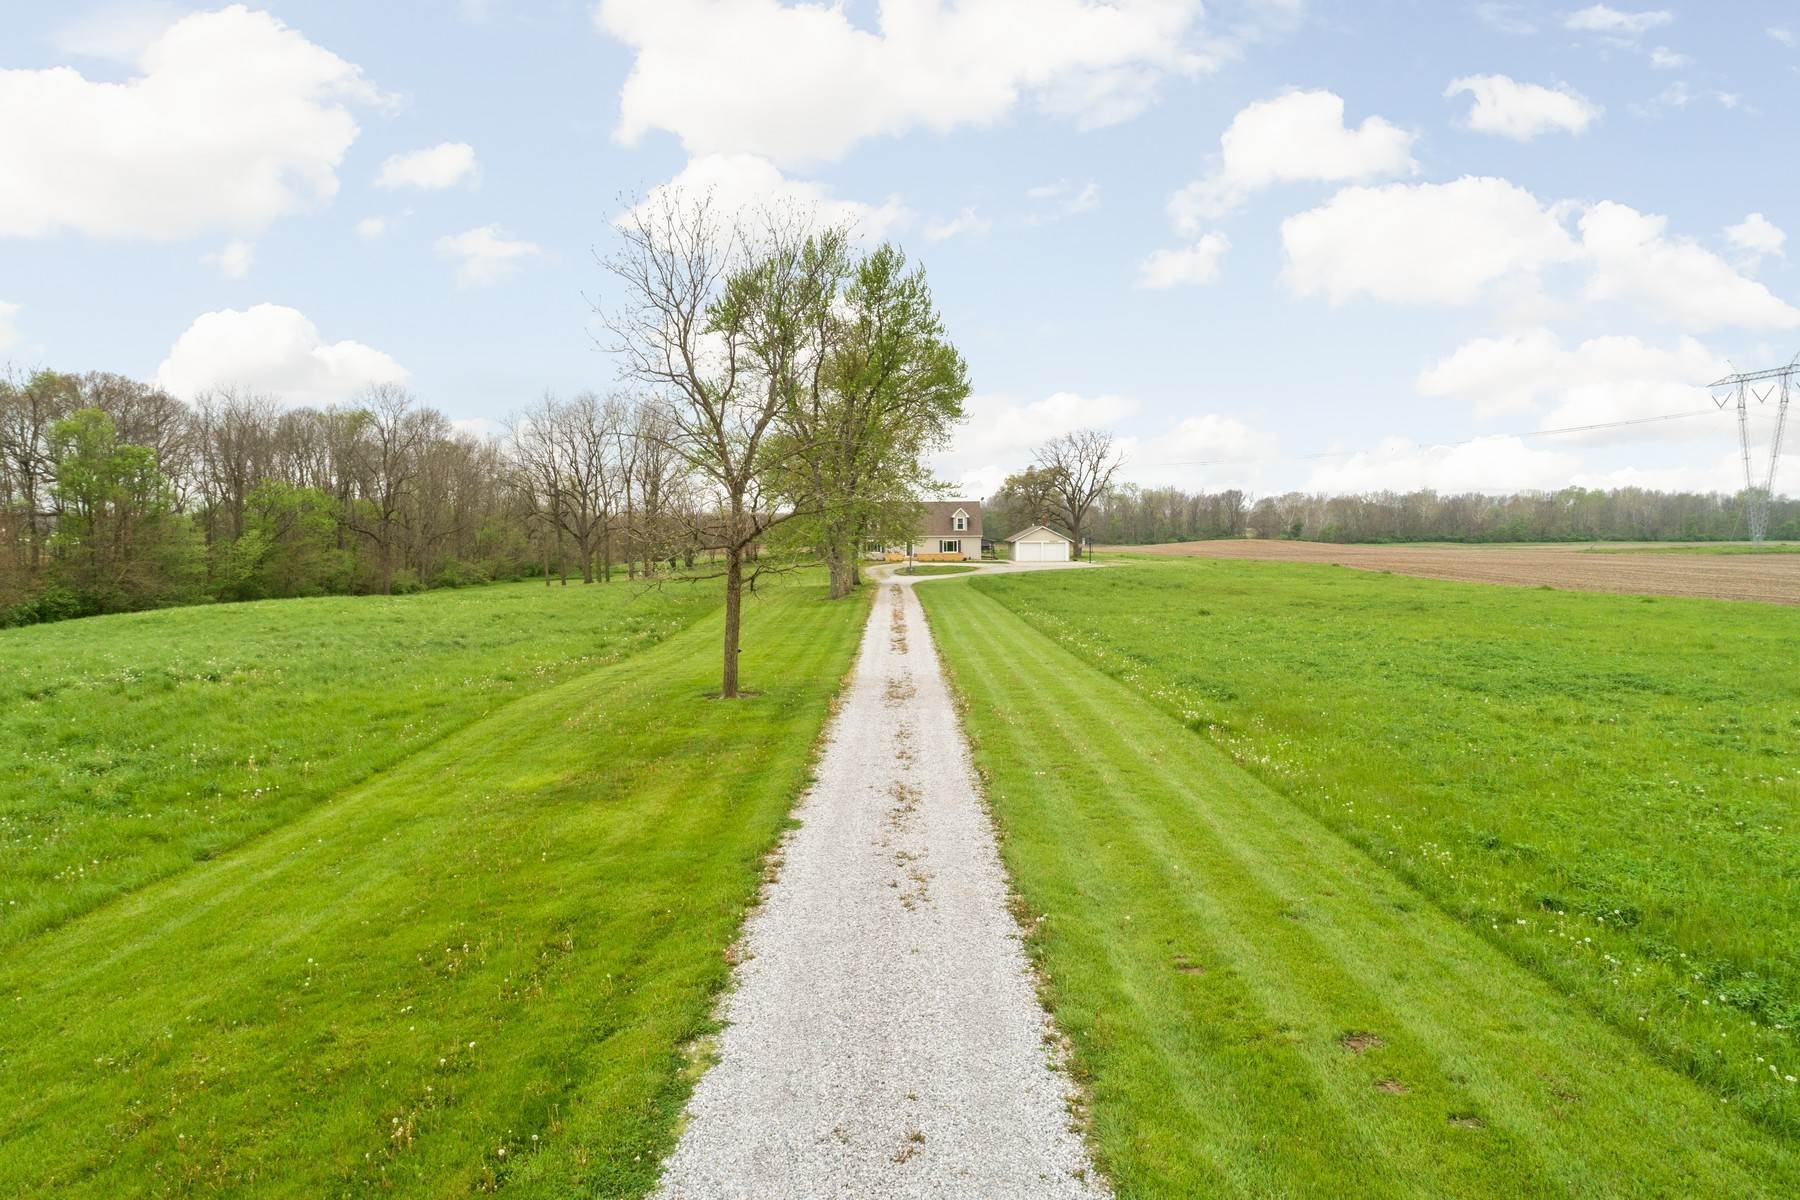 Single Family Homes for Sale at Bucolic Setting in Arcadia 24750 Cornell Road Arcadia, Indiana 46030 United States